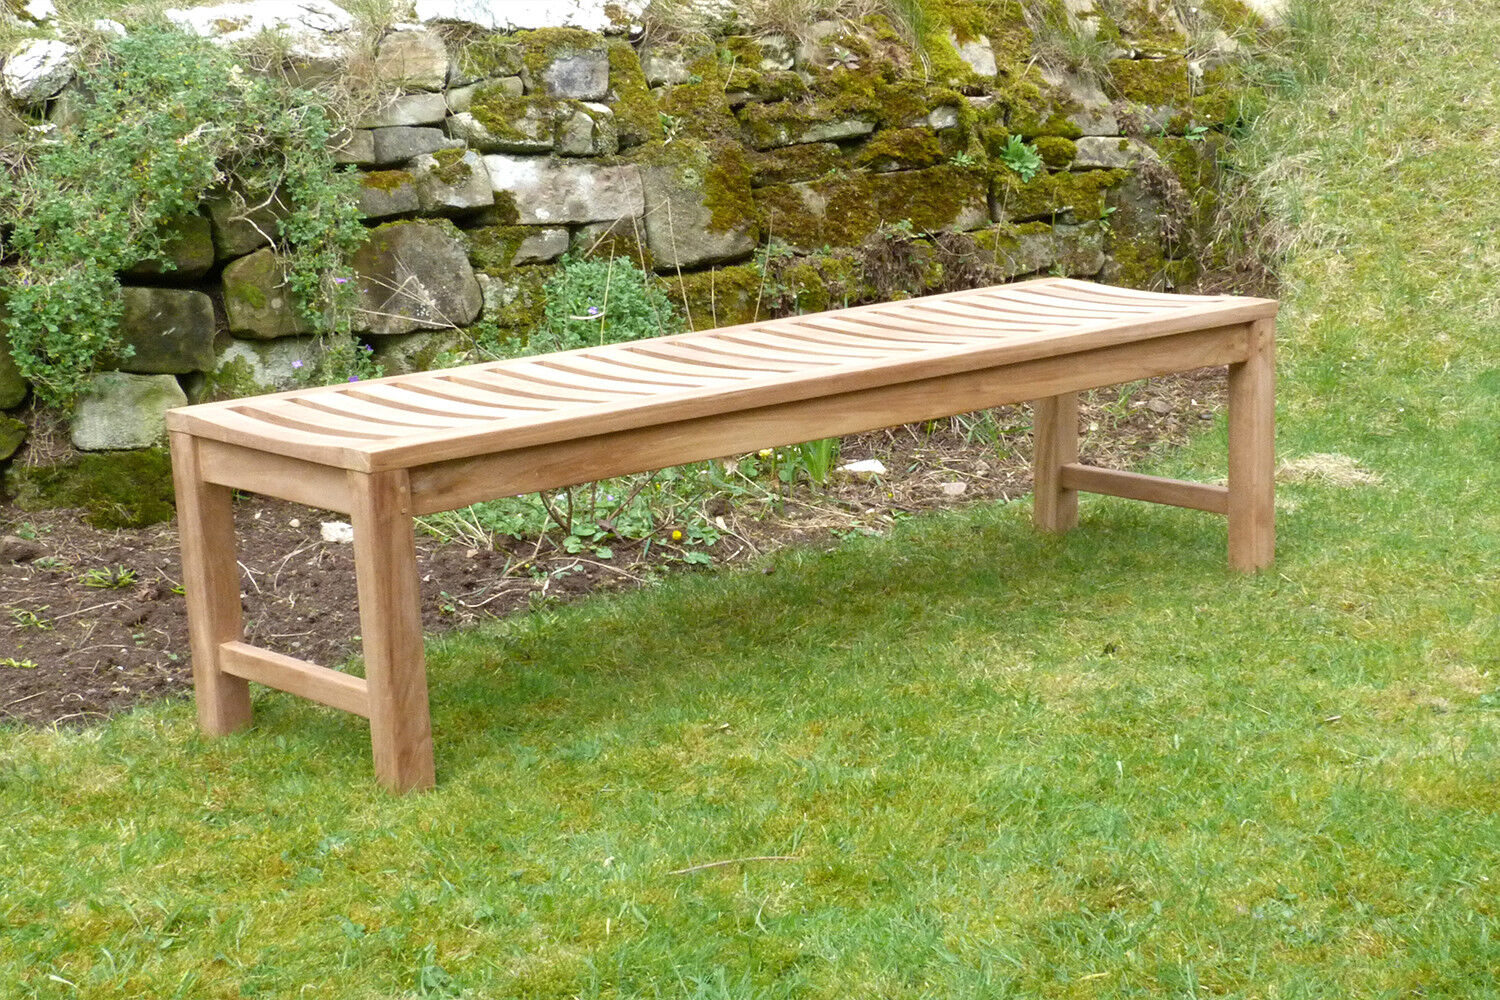 details about 3 seater teak wooden garden bench outdoor patio seat chair backless solid wood